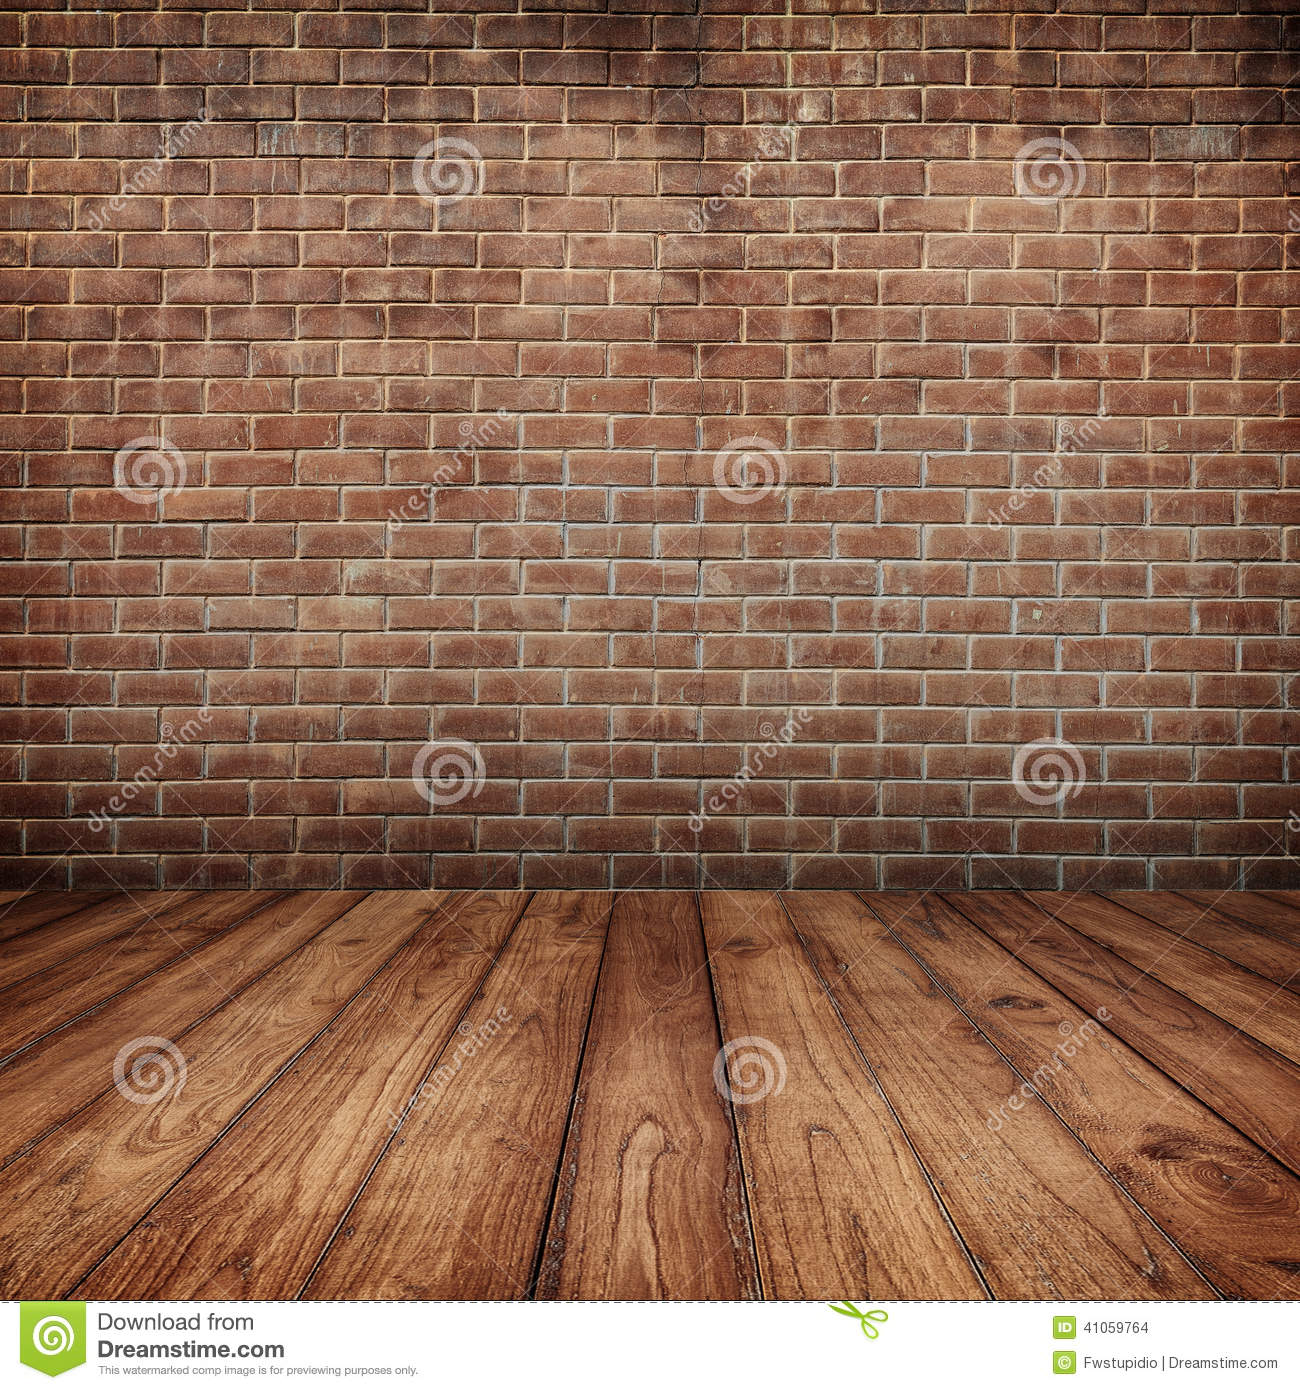 Concrete Brick Walls And Wood Floor For Text And